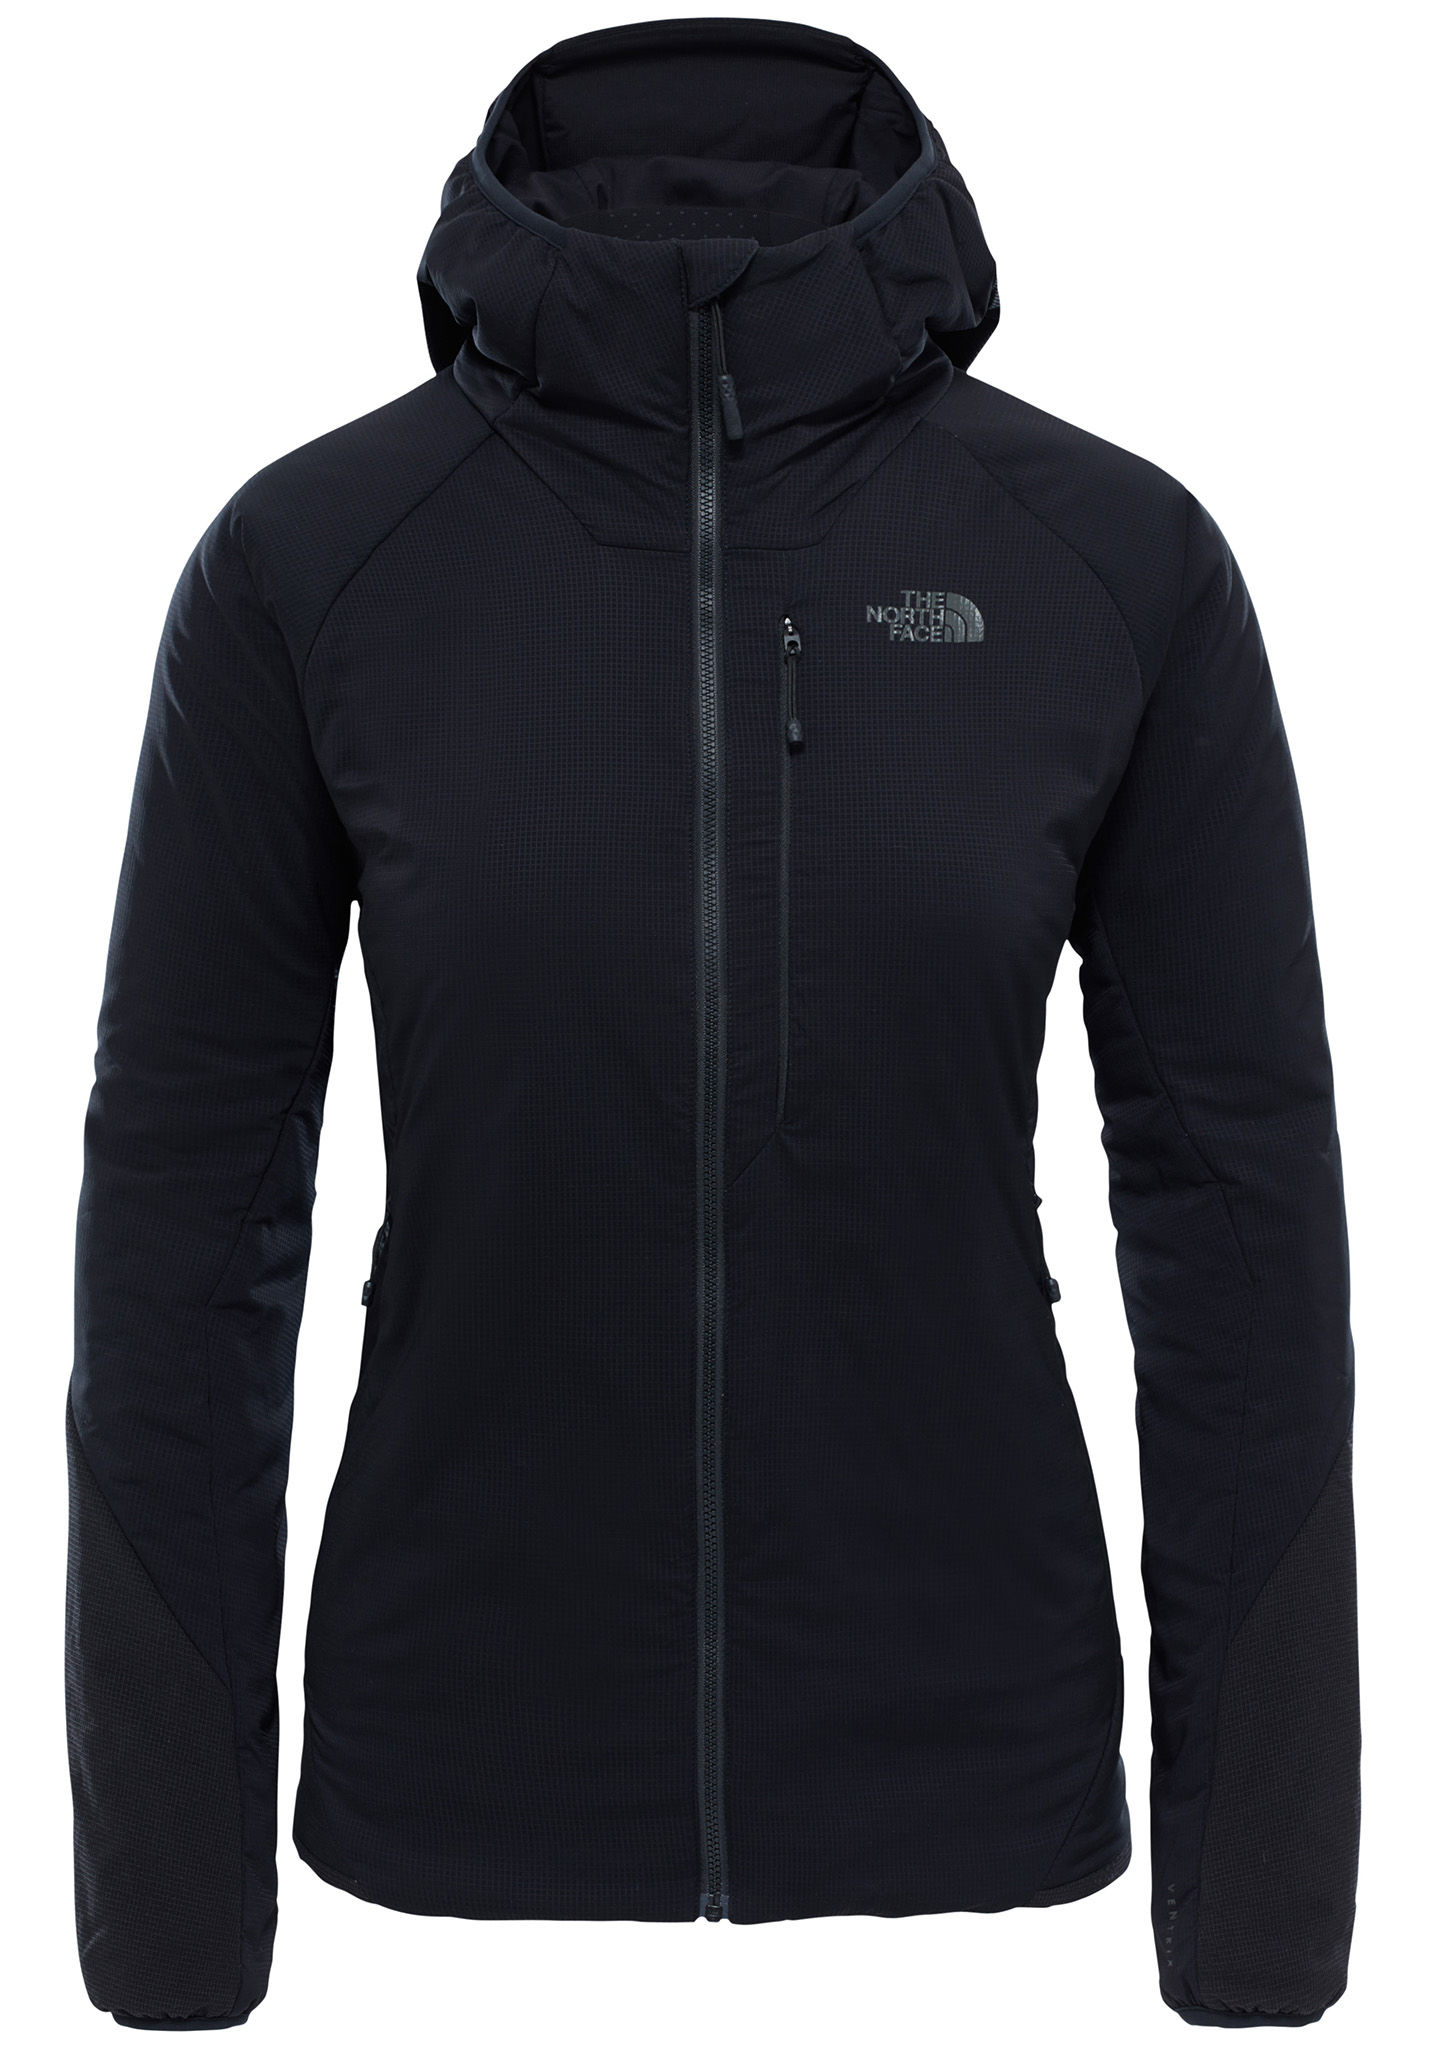 5e90db68daa THE NORTH FACE Ventrix - Outdoorjack voor Dames - Zwart